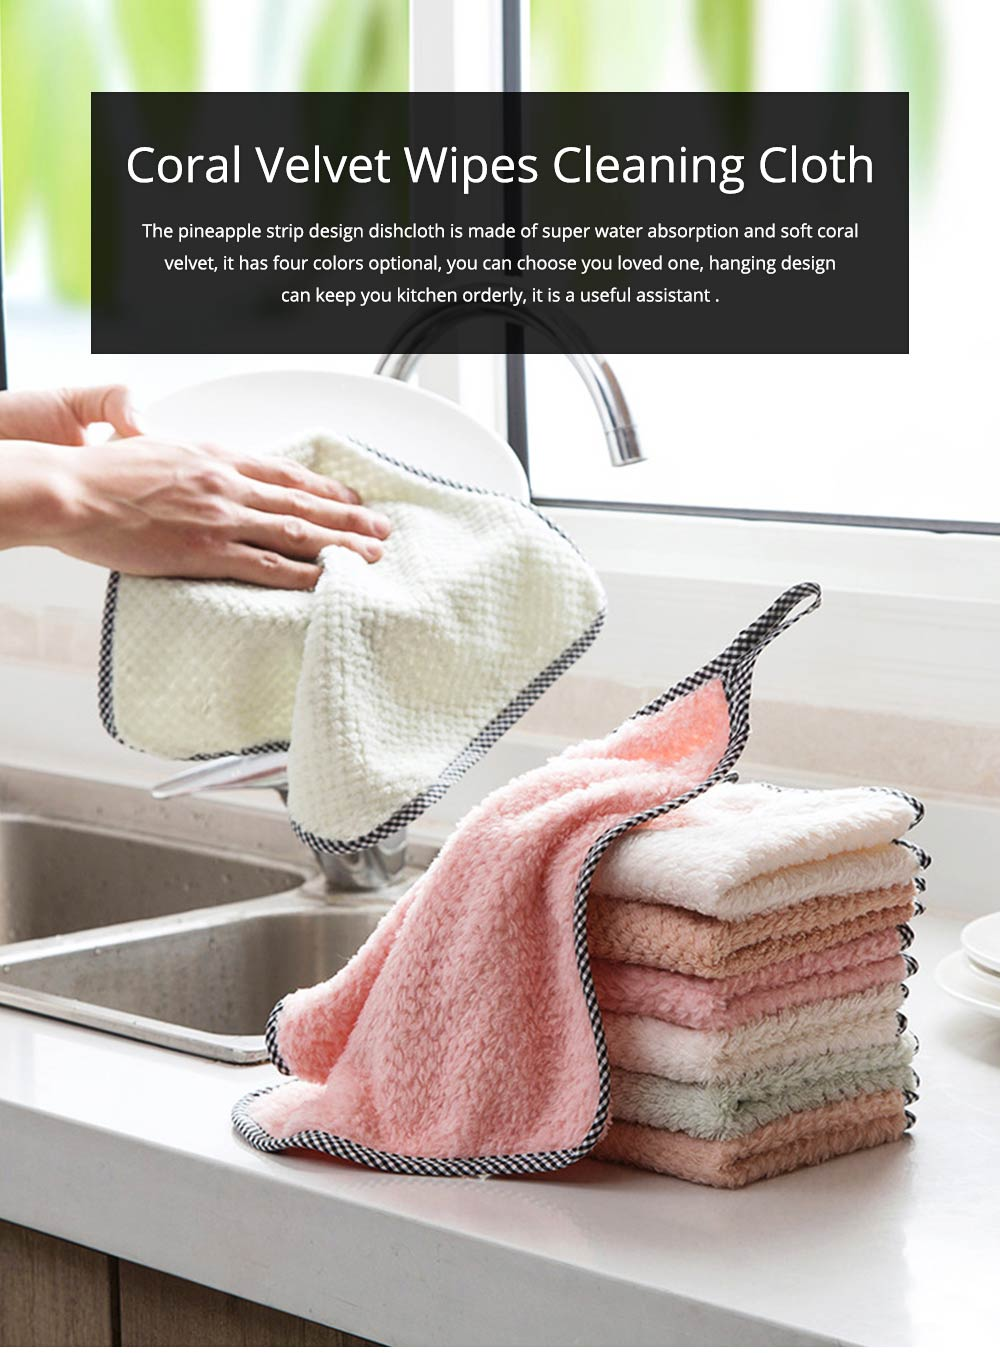 Coral Velvet Wipes Cleaning Cloth Super Absorbent Dish Towels Kitchen Washing Dishcloths 0